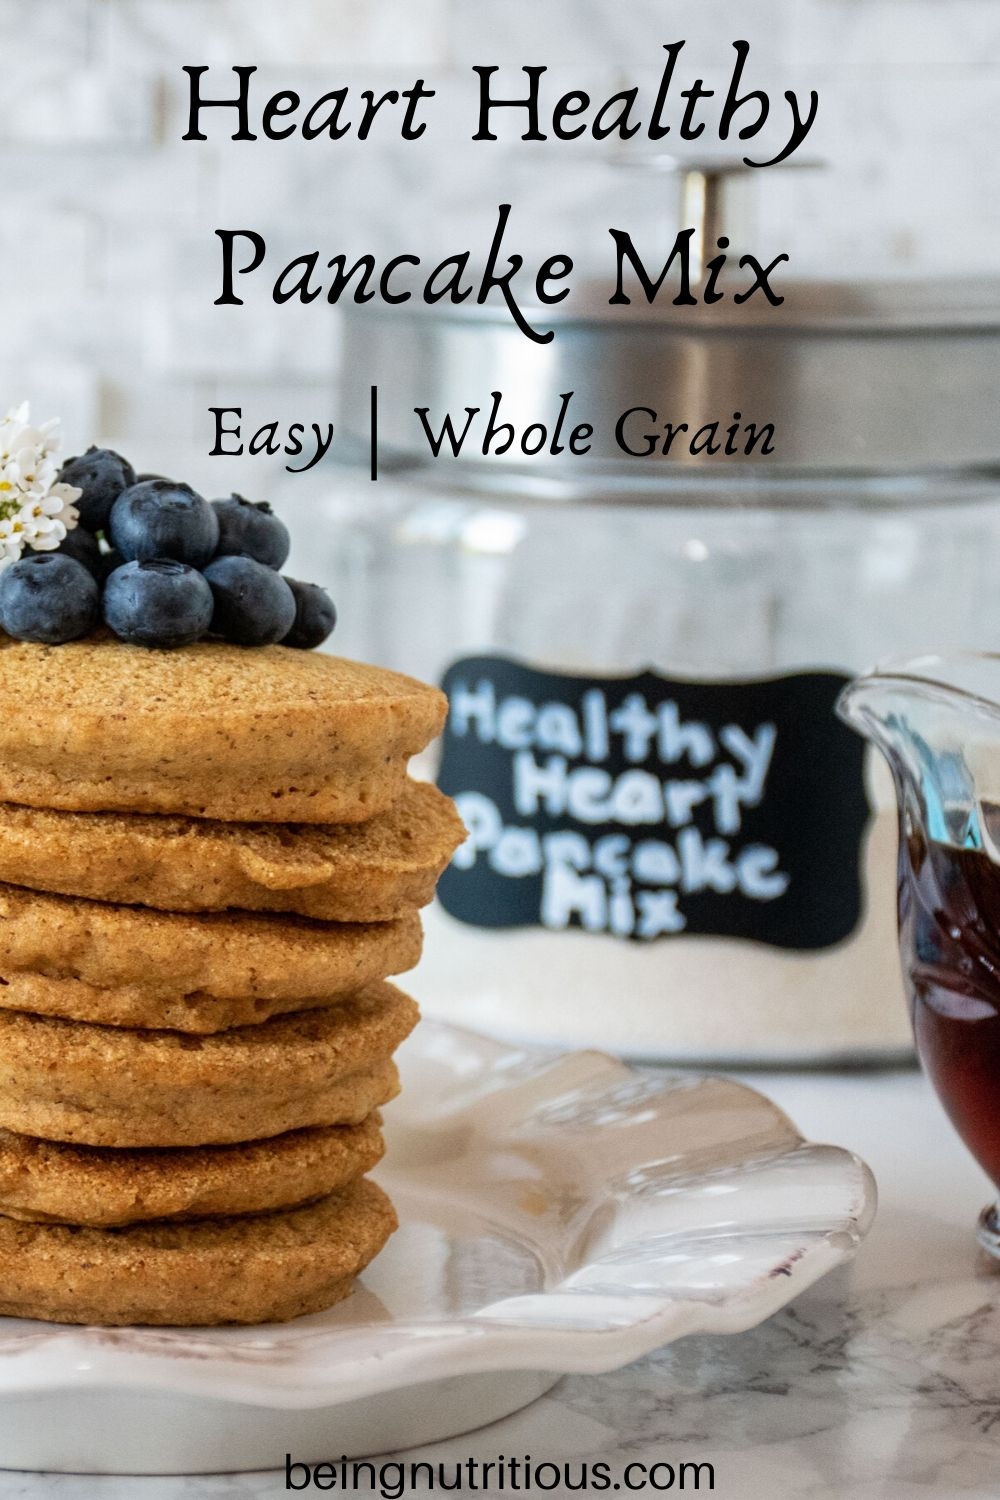 Stack of 6 whole wheat pancakes, with a pile of fresh blueberries on top. Glass jar that reads 'healthy heart pancake mix' is visible in the background.